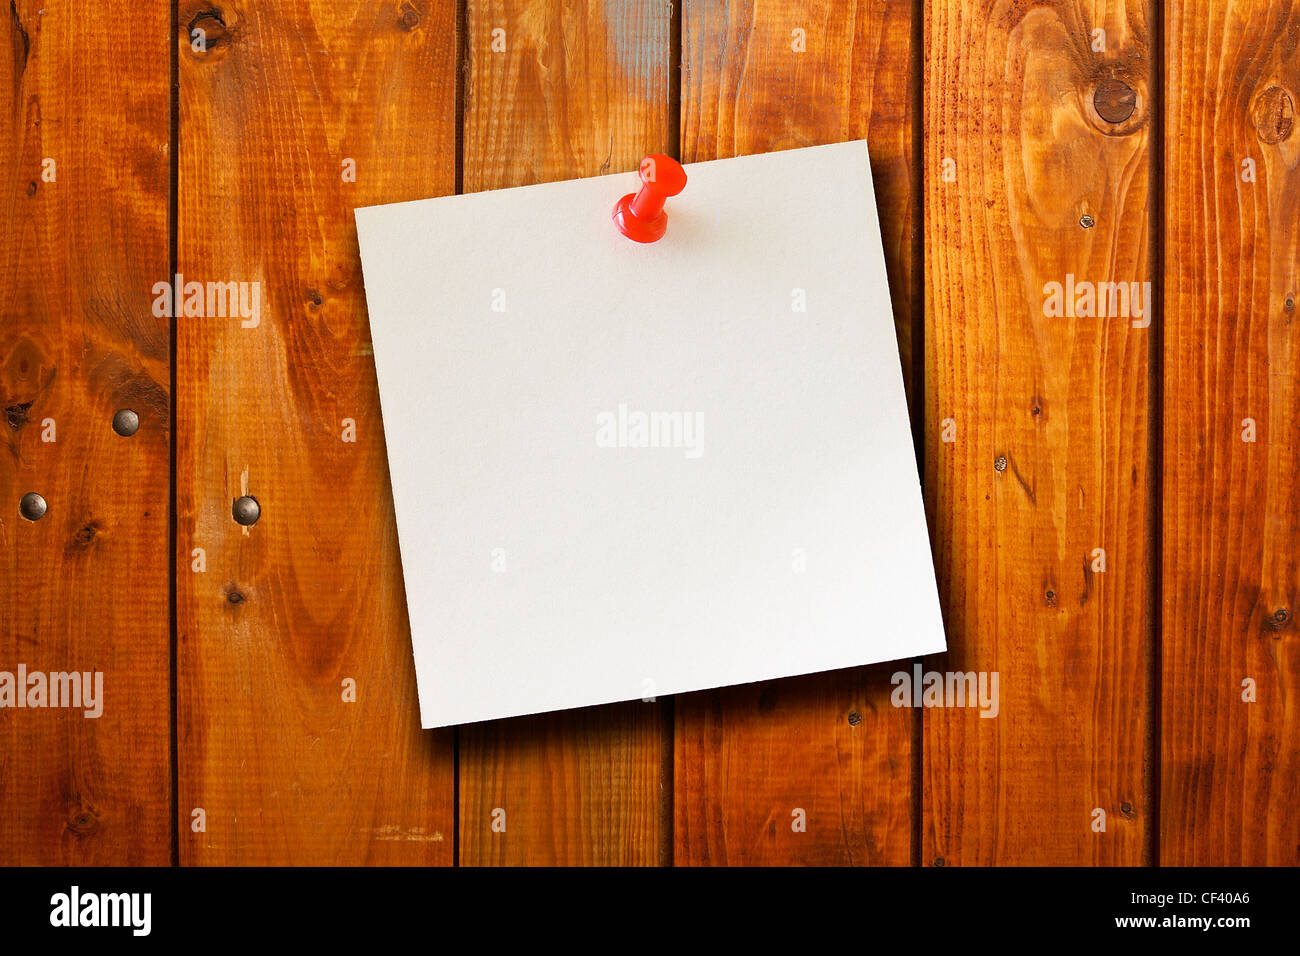 the blank paper note on wood board background - Stock Image